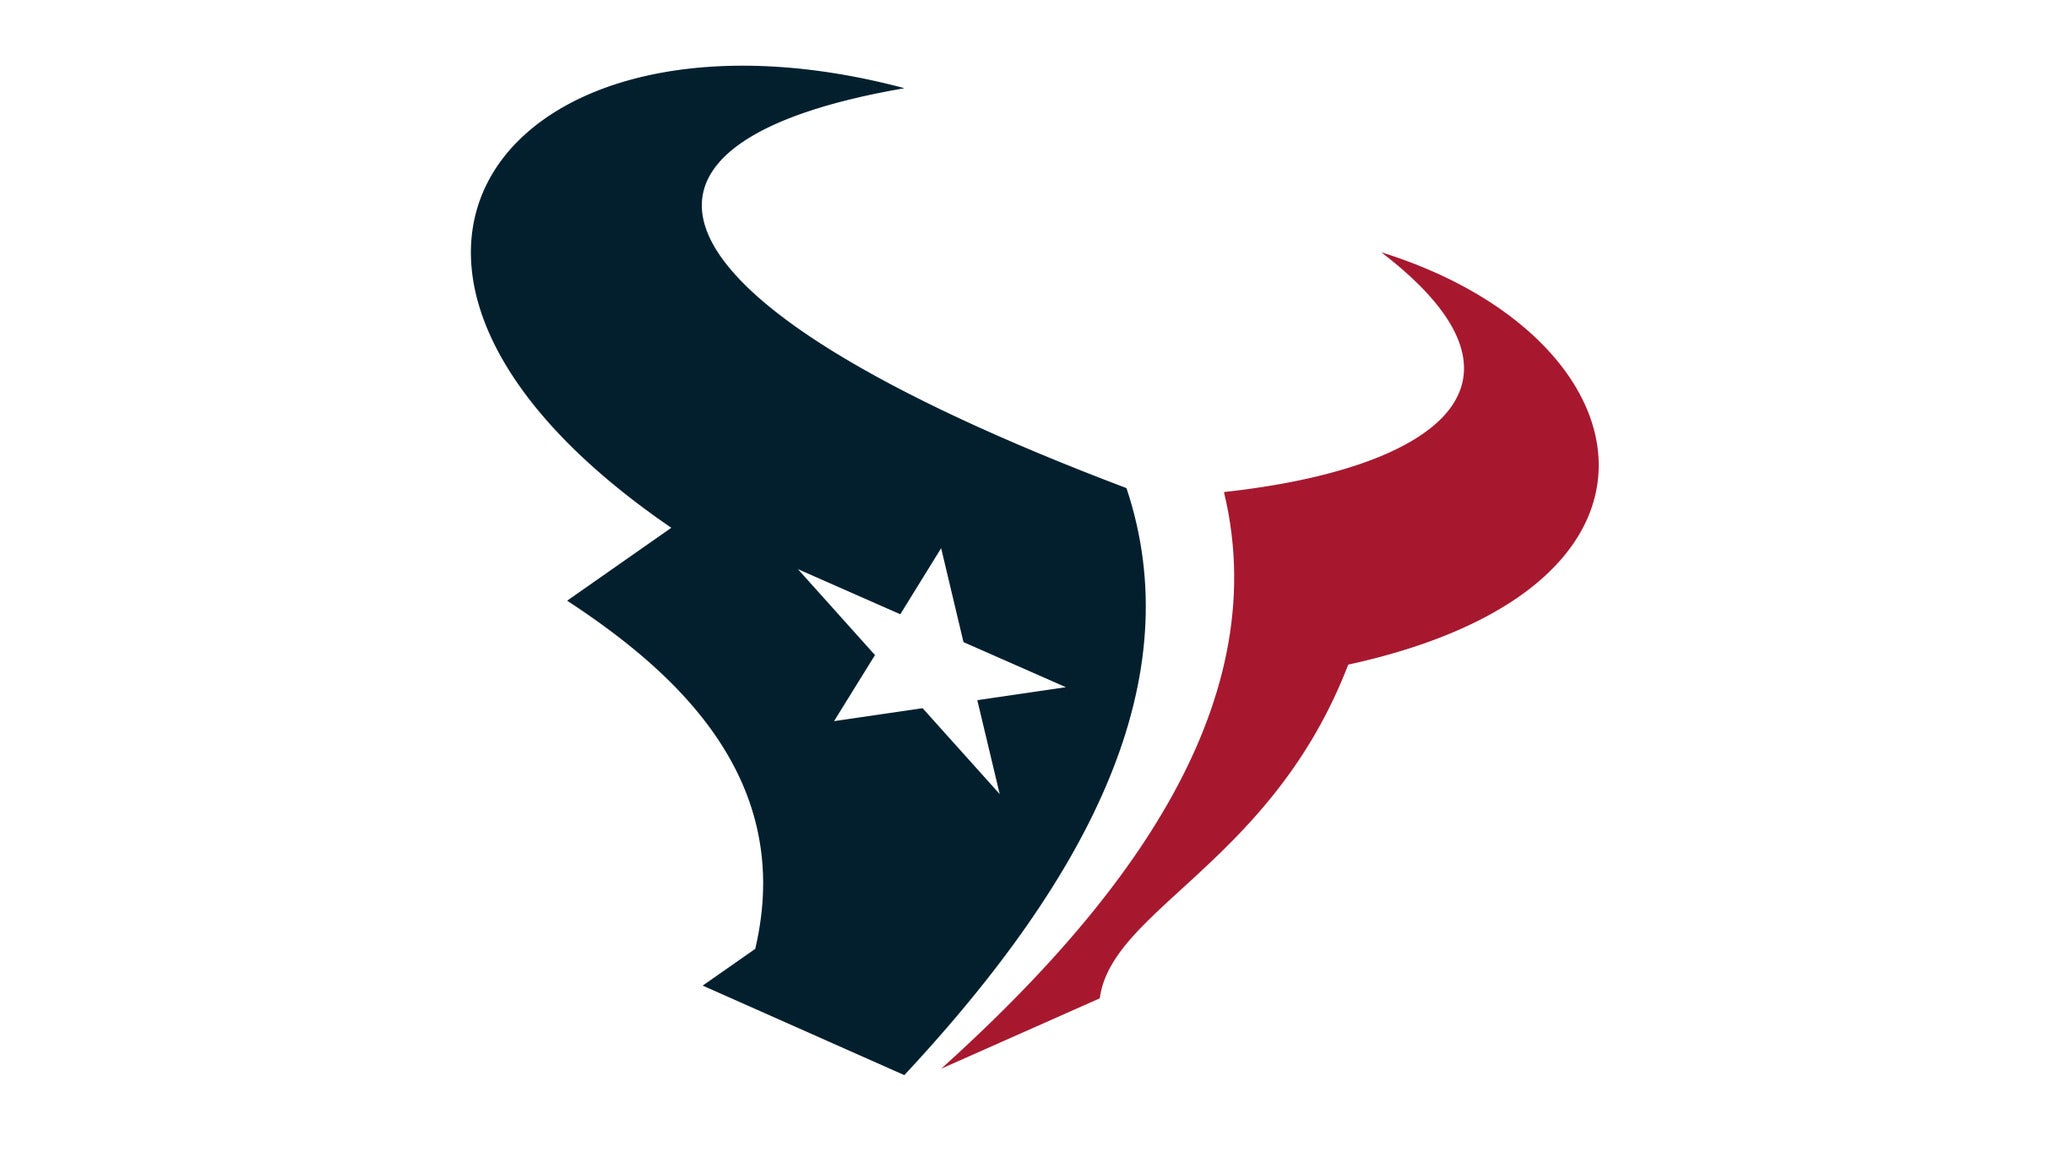 Houston Texans vs. Tennessee Titans at NRG Stadium